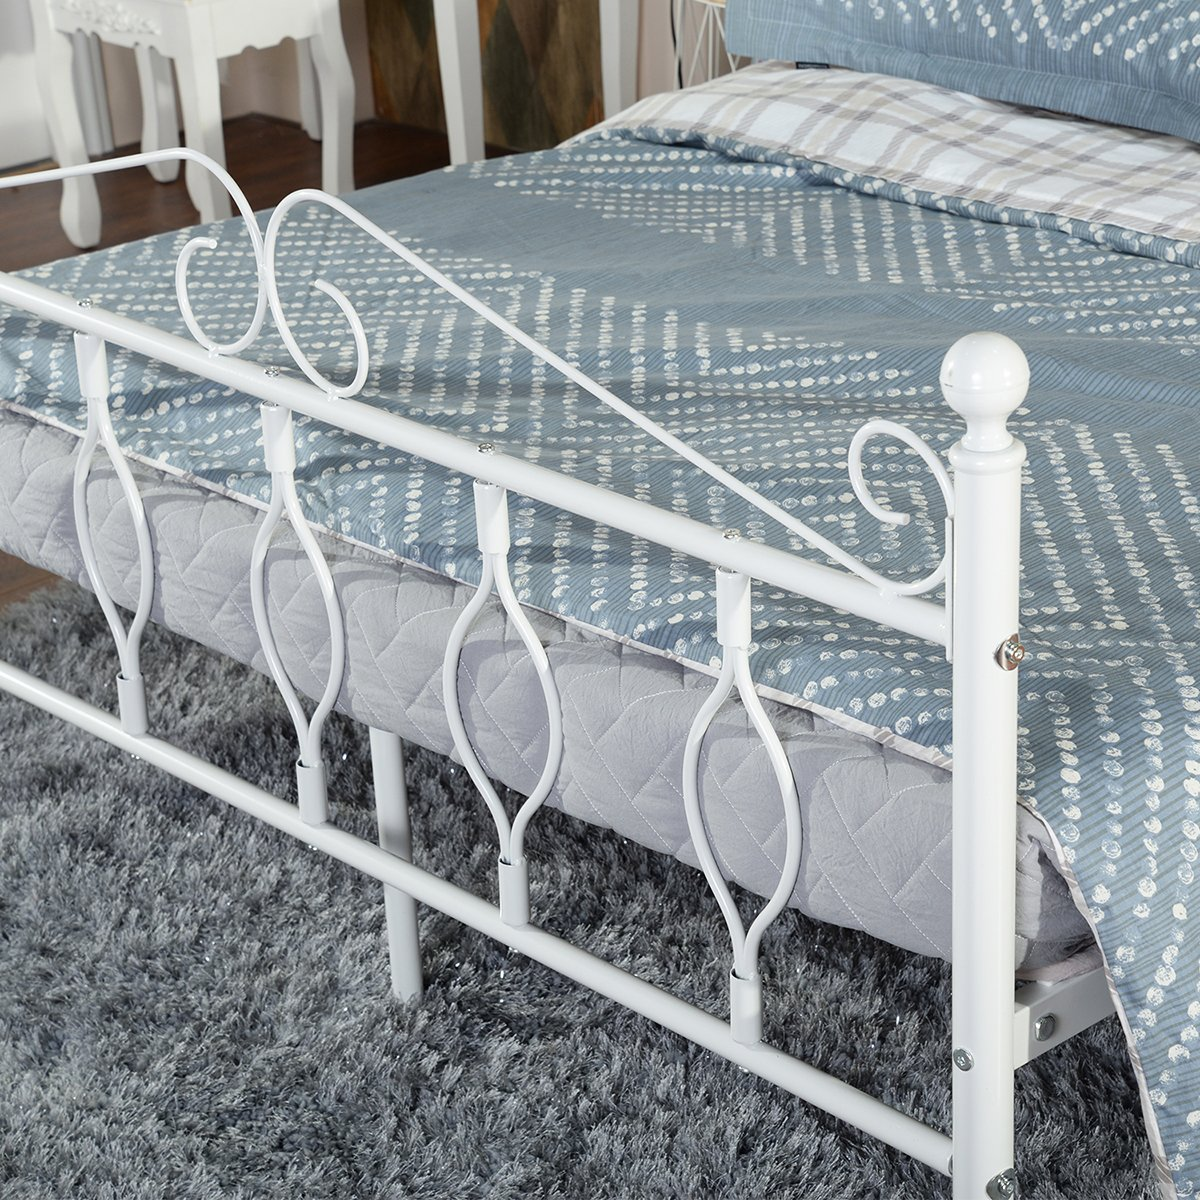 32076b6cd92 GreenForest Twin Bed Frame Metal Platform Complete Bed with Vintage  Headboard and Footboard Box Spring Replacement larger image